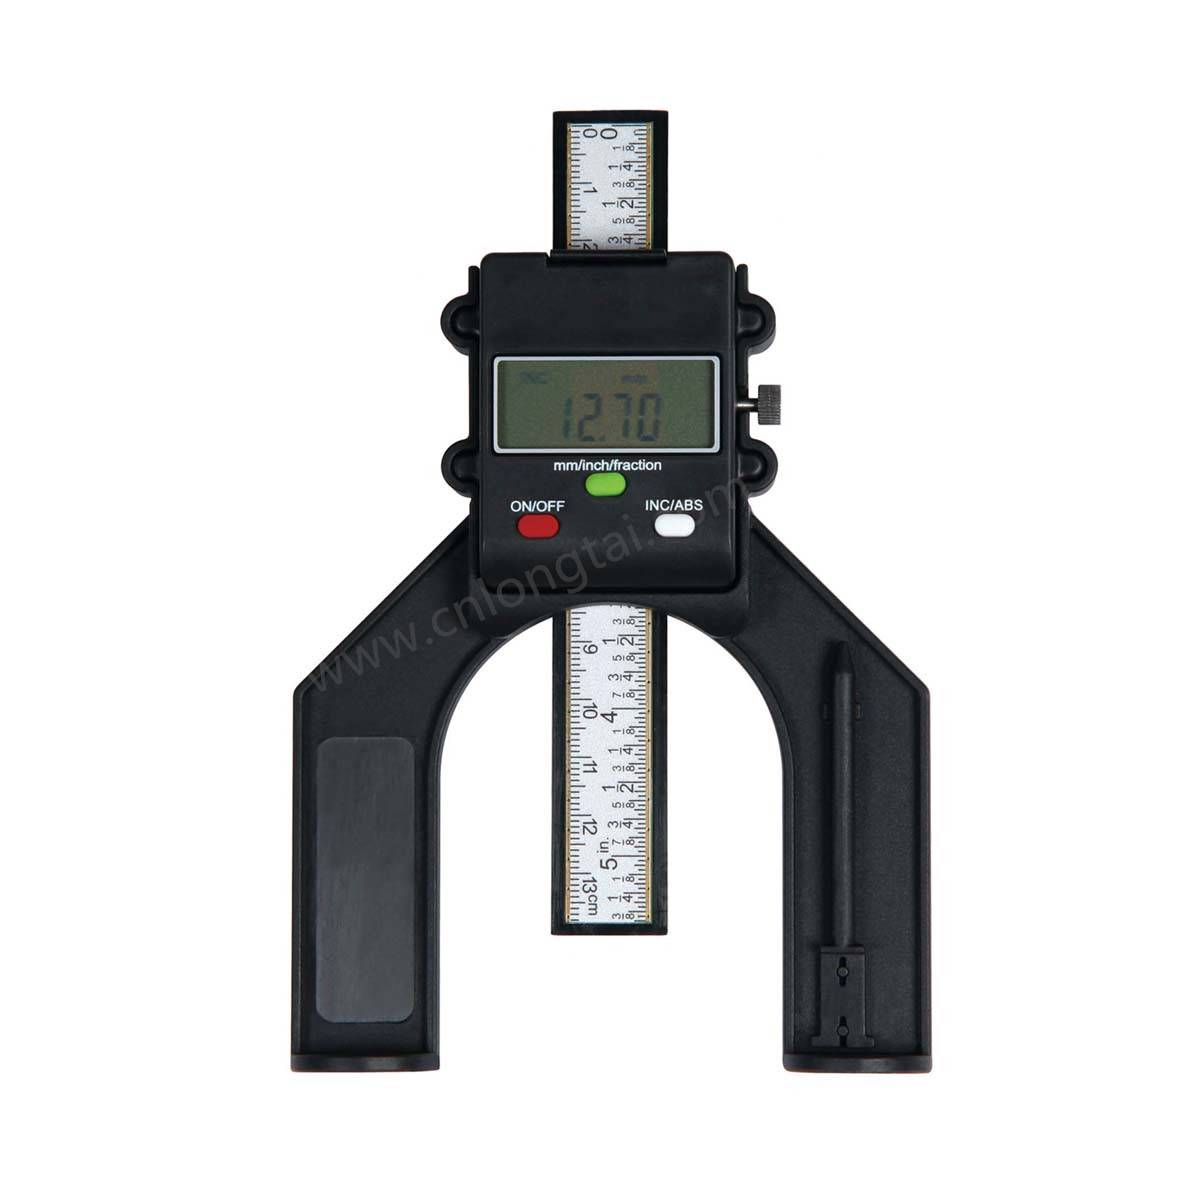 Digital Depth Micrometer LT-S39 Featured Image